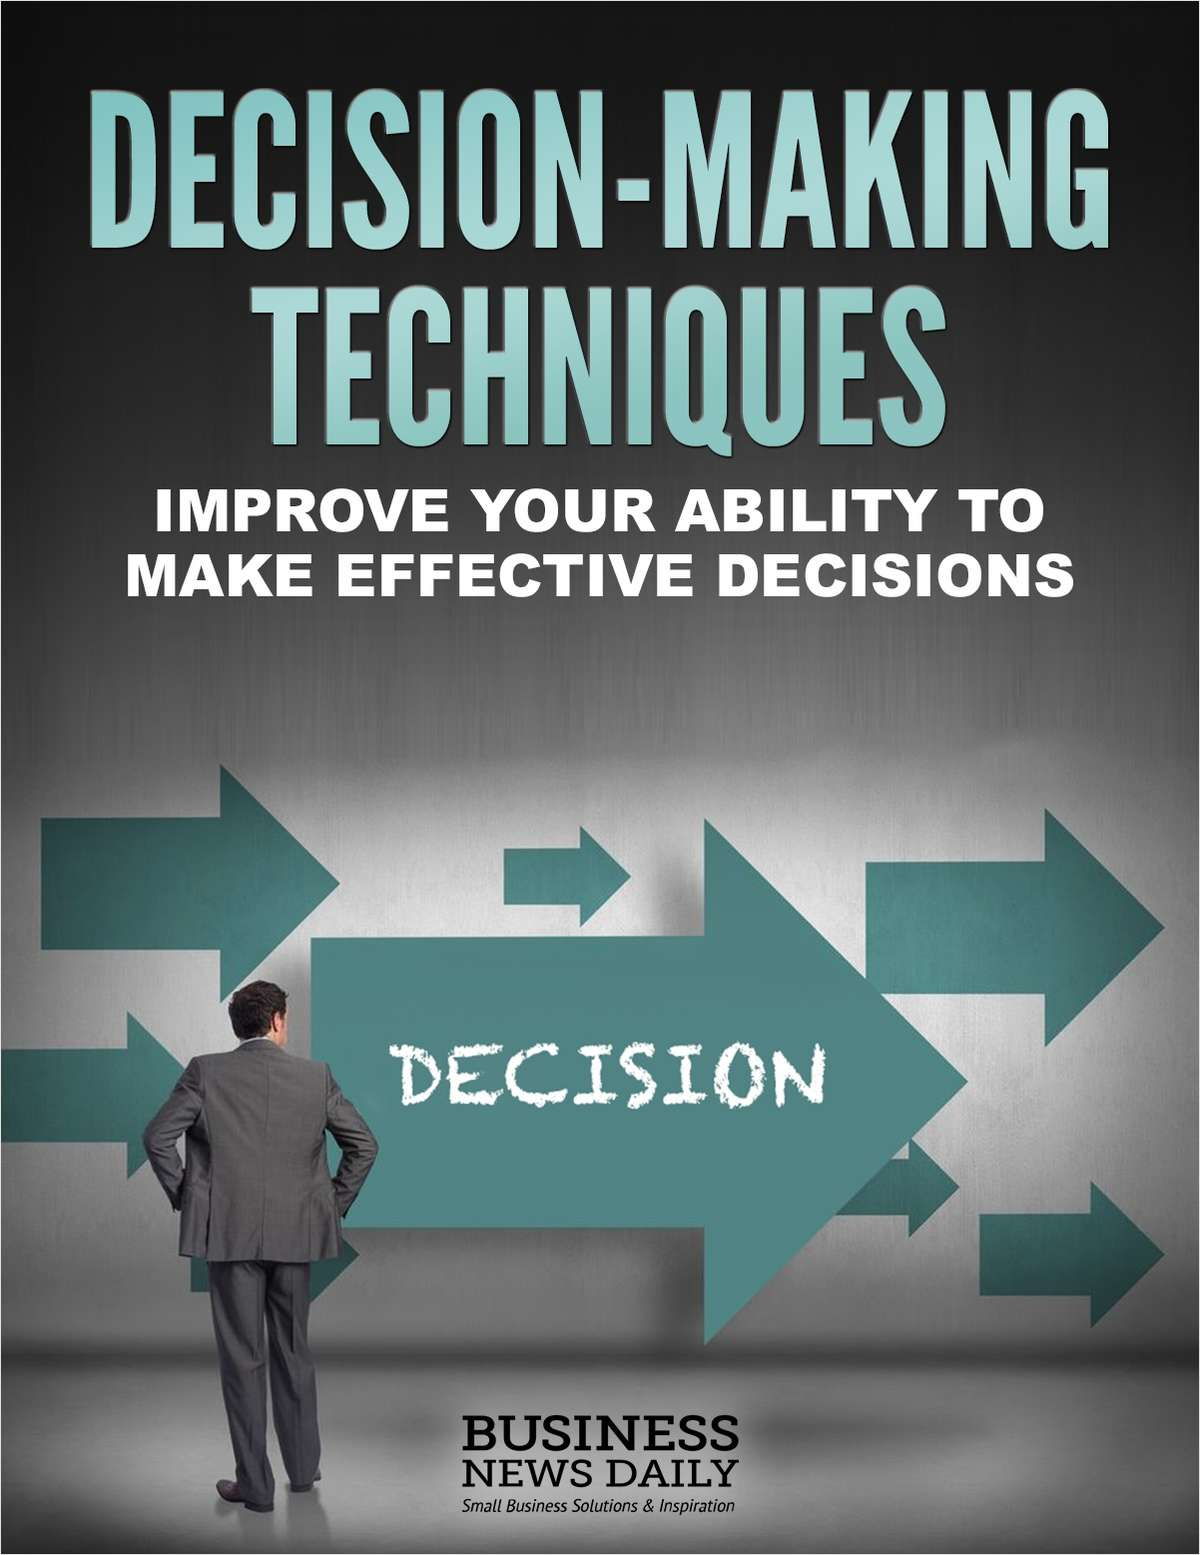 accounting and decision making techniques